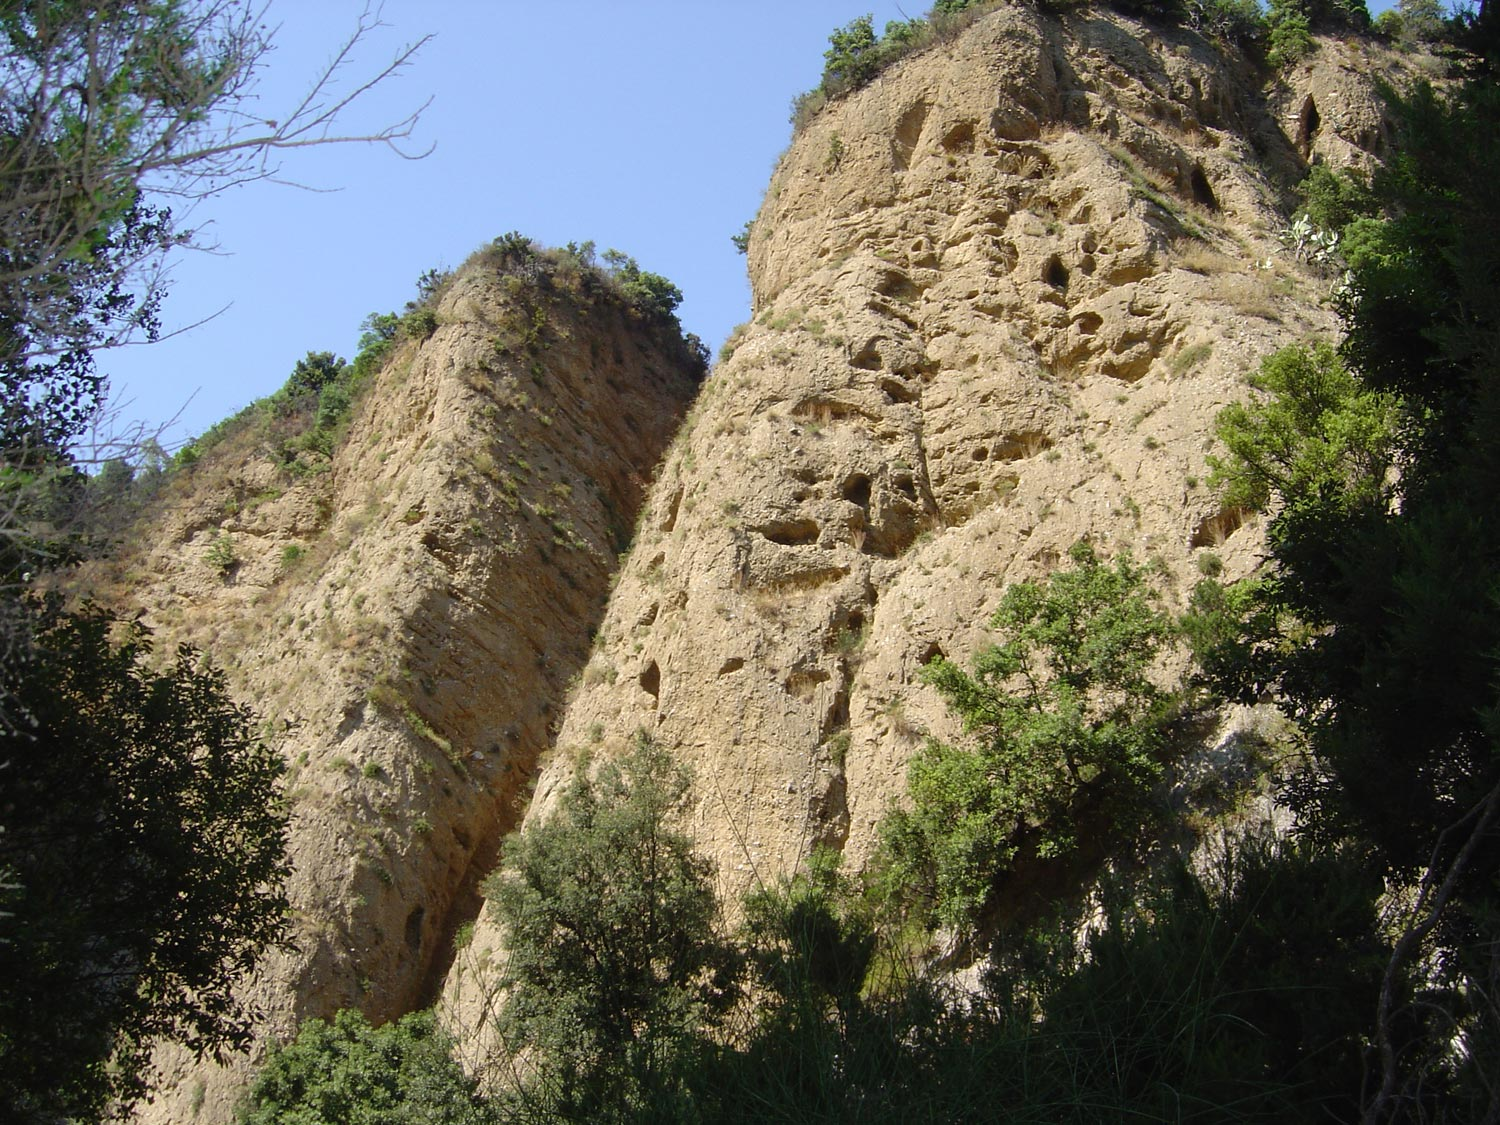 Canyon Valli Cupe